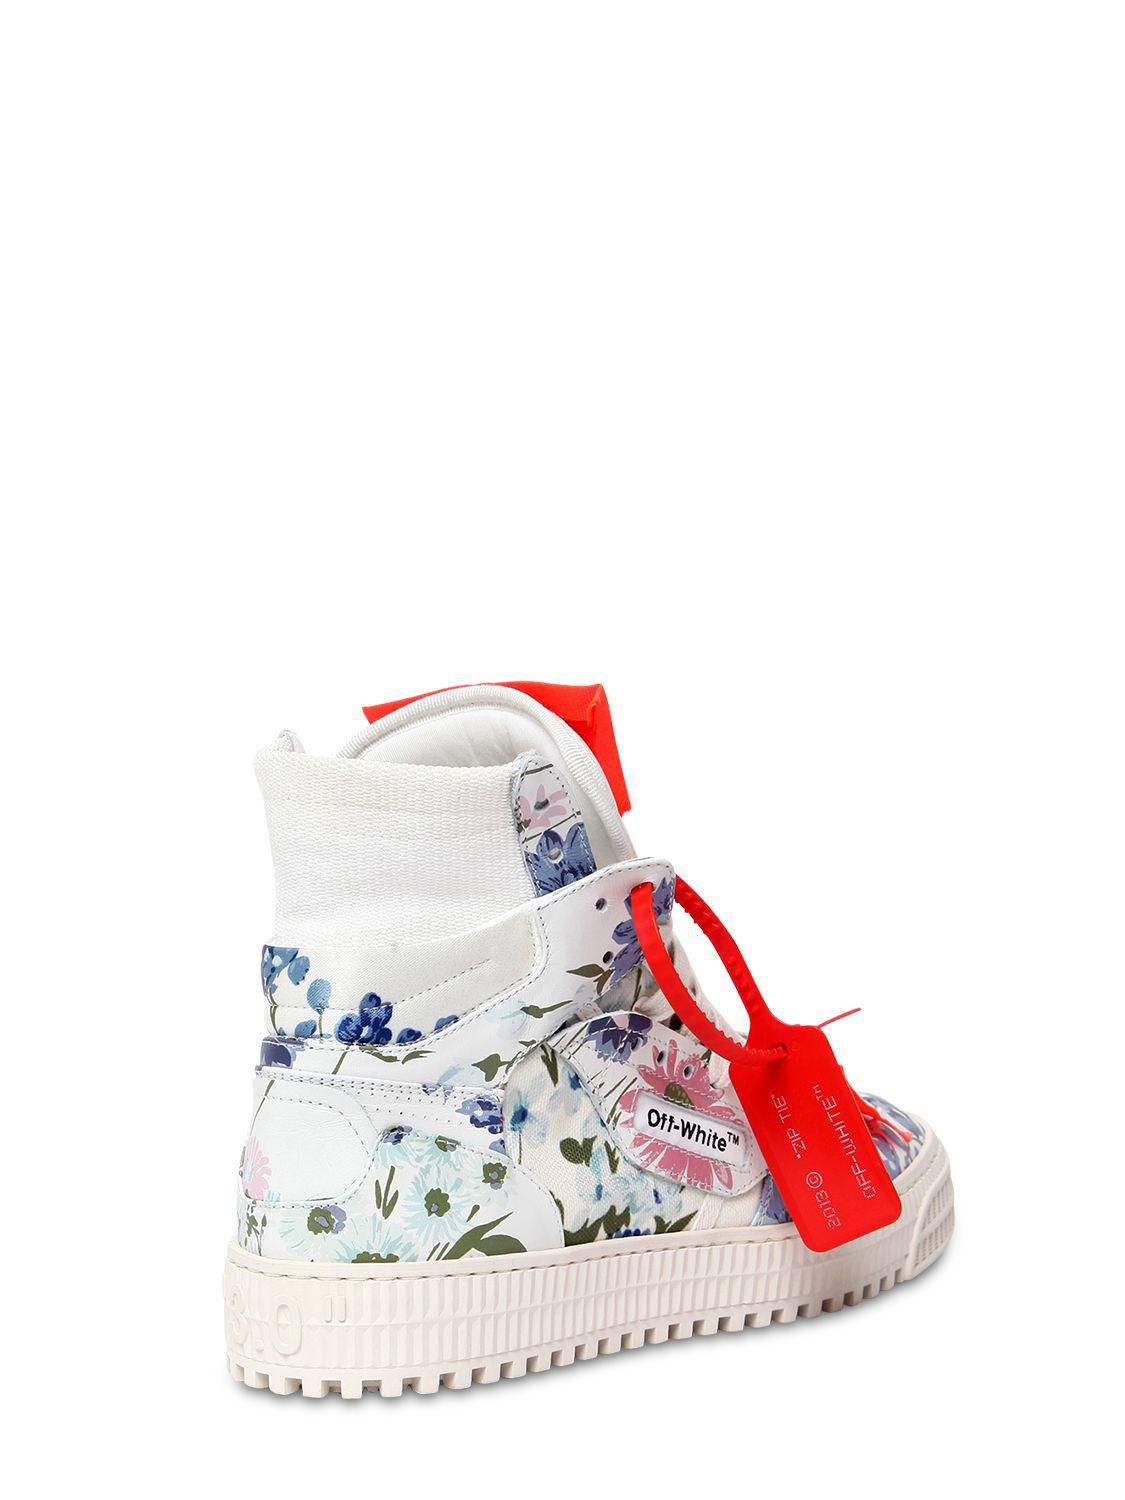 OFF-WHITE 20MM LOW 3.0 FLORAL LEATHER SNEAKERS STp2pgw